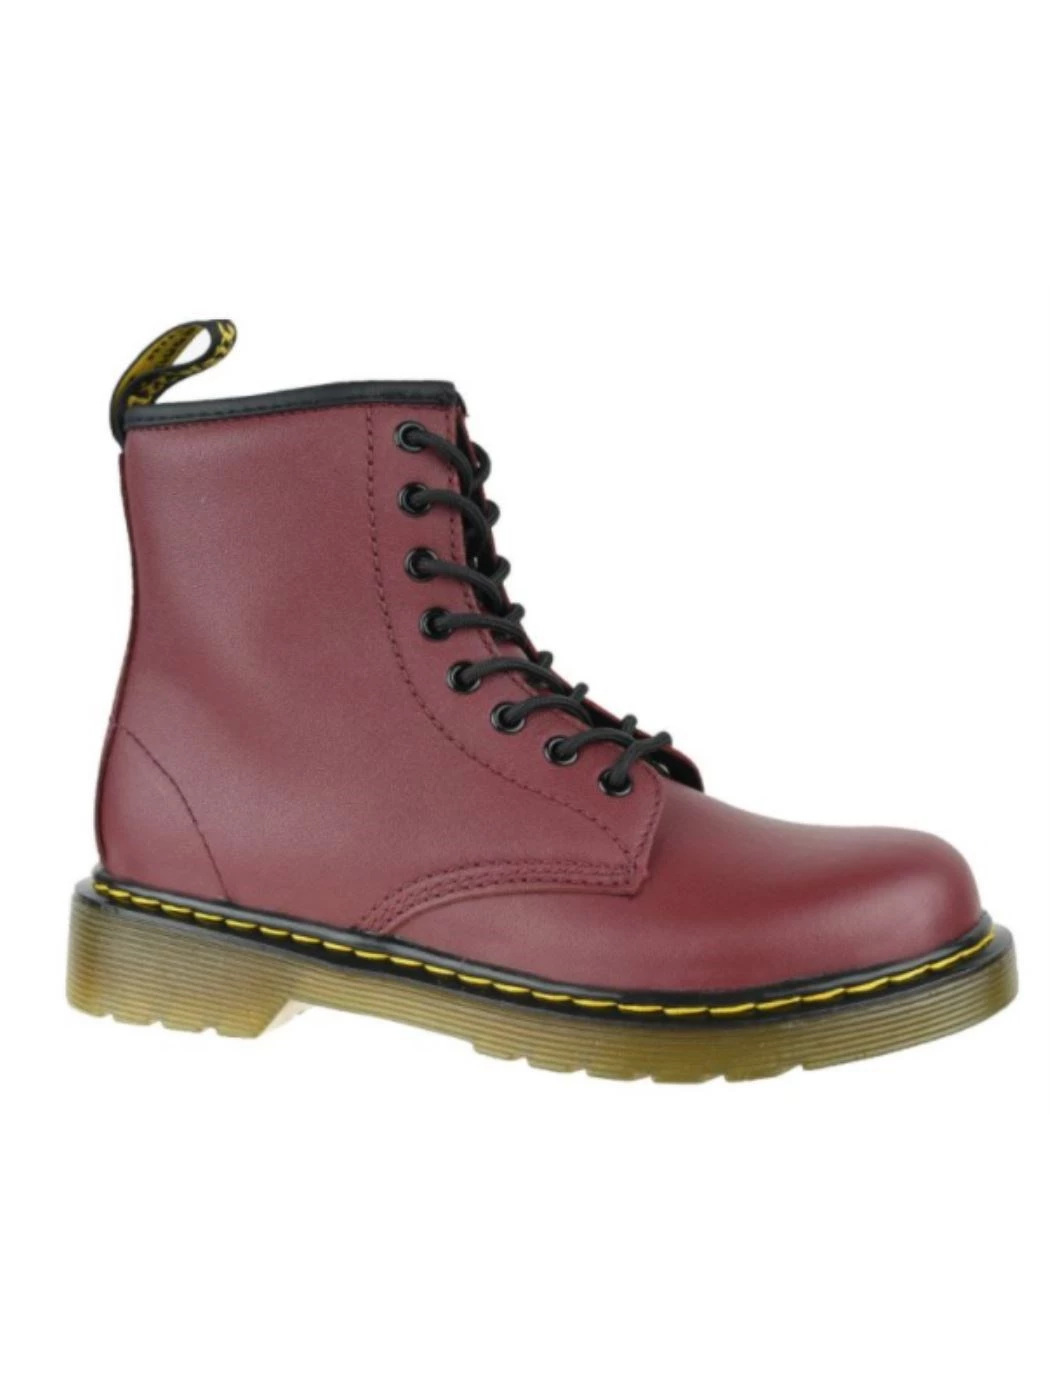 DR. MARTENS CHERRY RED SOFTY T